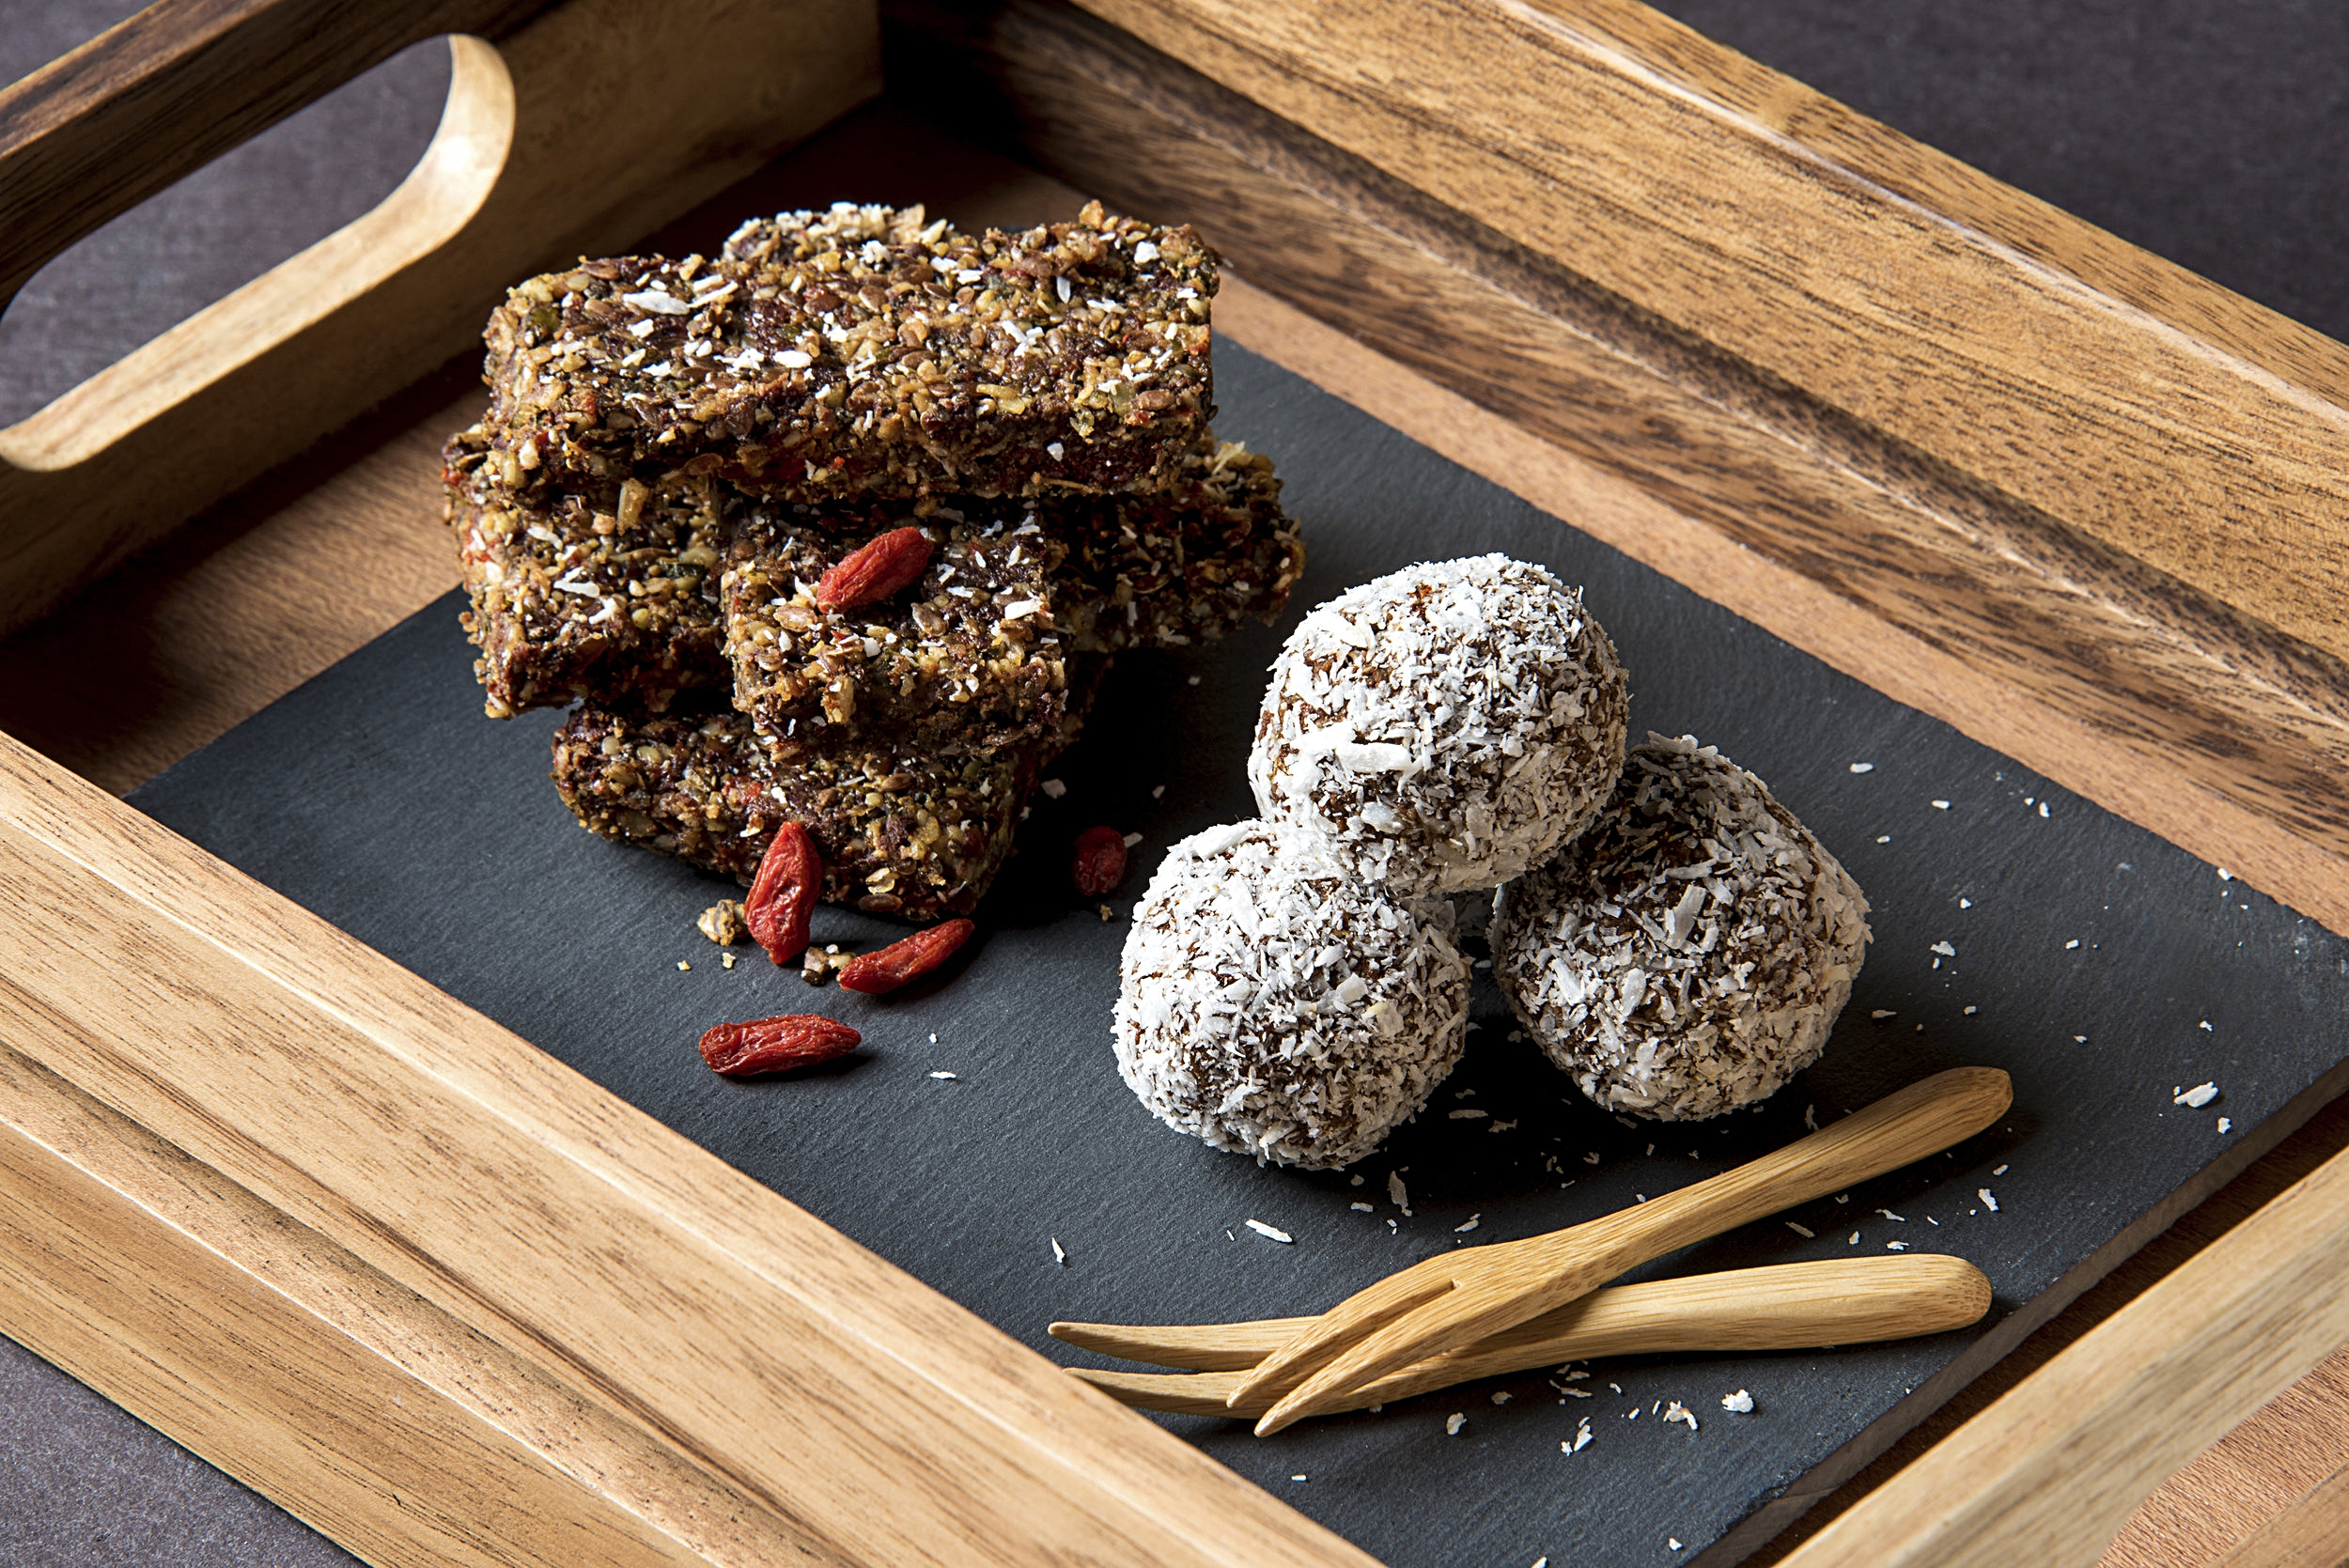 Heather's-Table-Protein-Balls-Personal-Chef